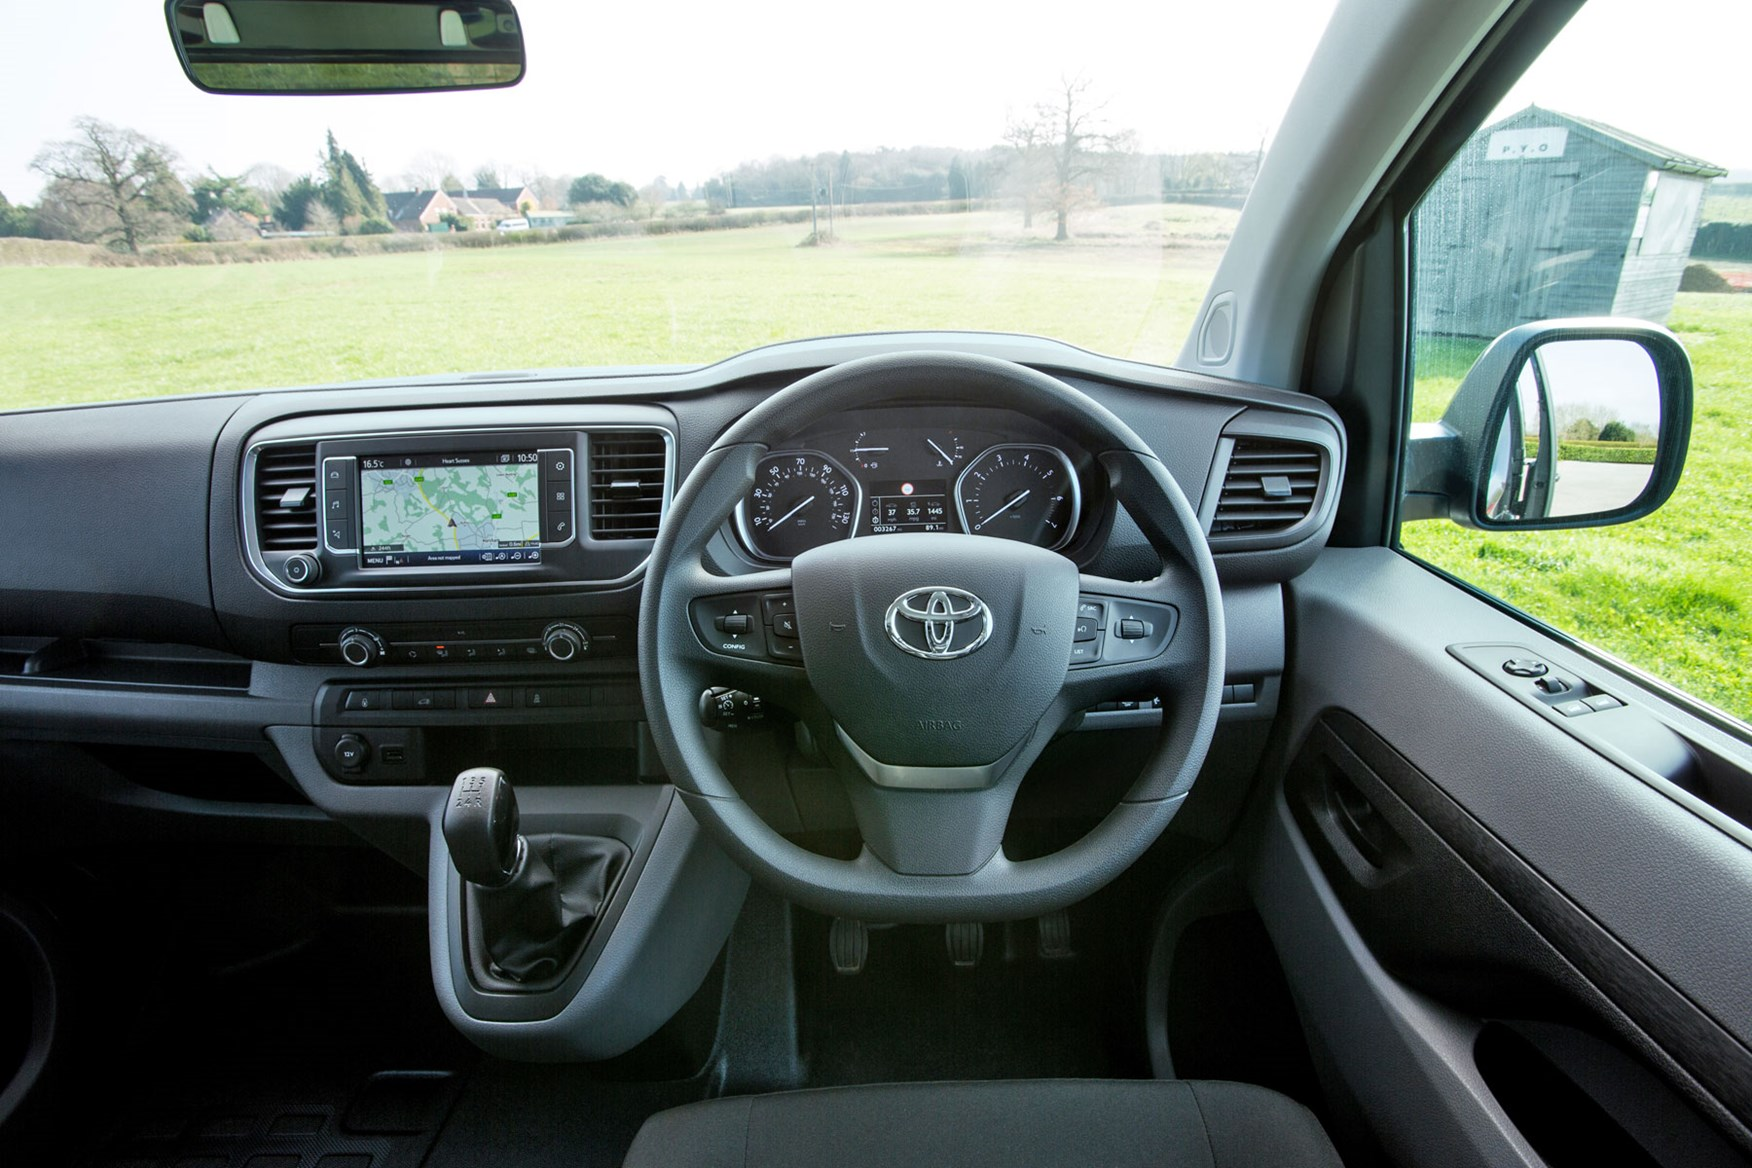 Toyota Proace review - cab interior, steering wheel, dials, infotainment, 2018